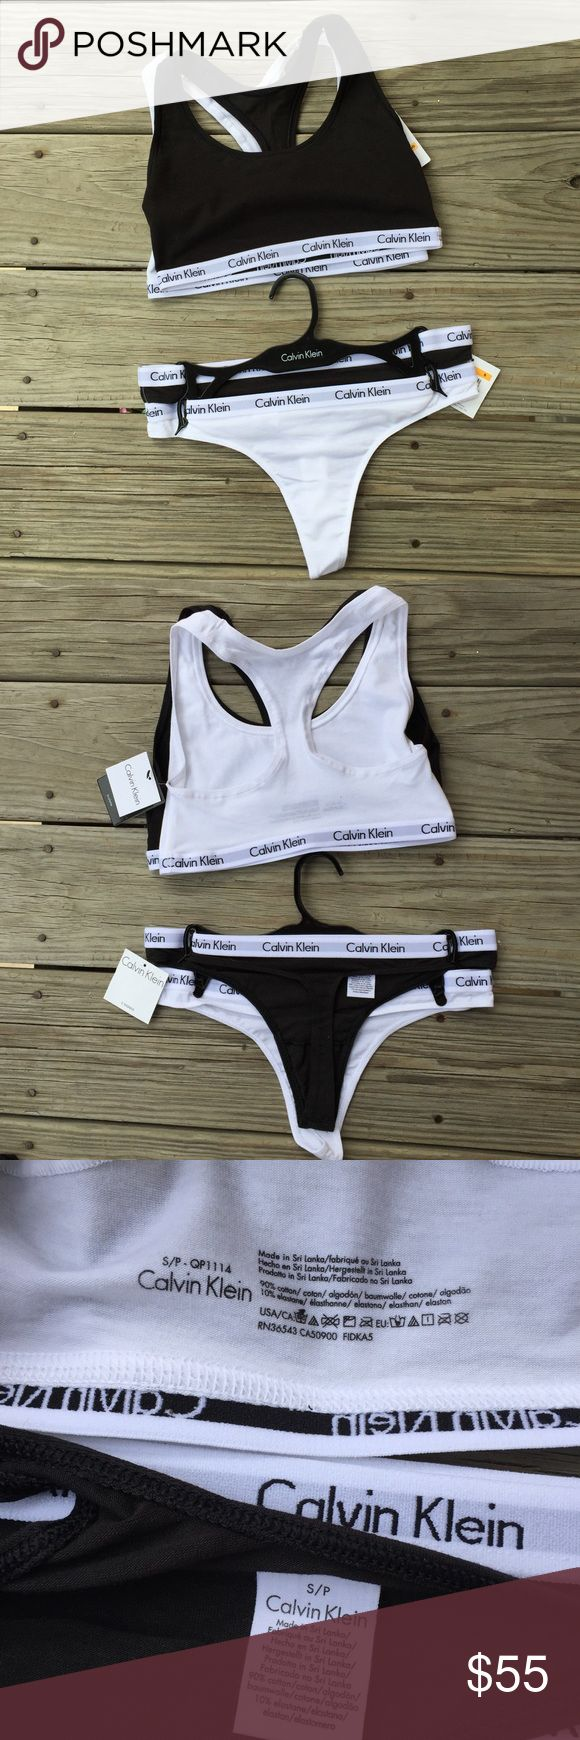 calvin klein set simple black and white calvin klein thongs and bralettes, both size small. price is for both bralettes and thongs. they came together as sets and will only be sold as sets! (sorry about that!!) Calvin Klein Underwear Intimates & Sleepwear Bras